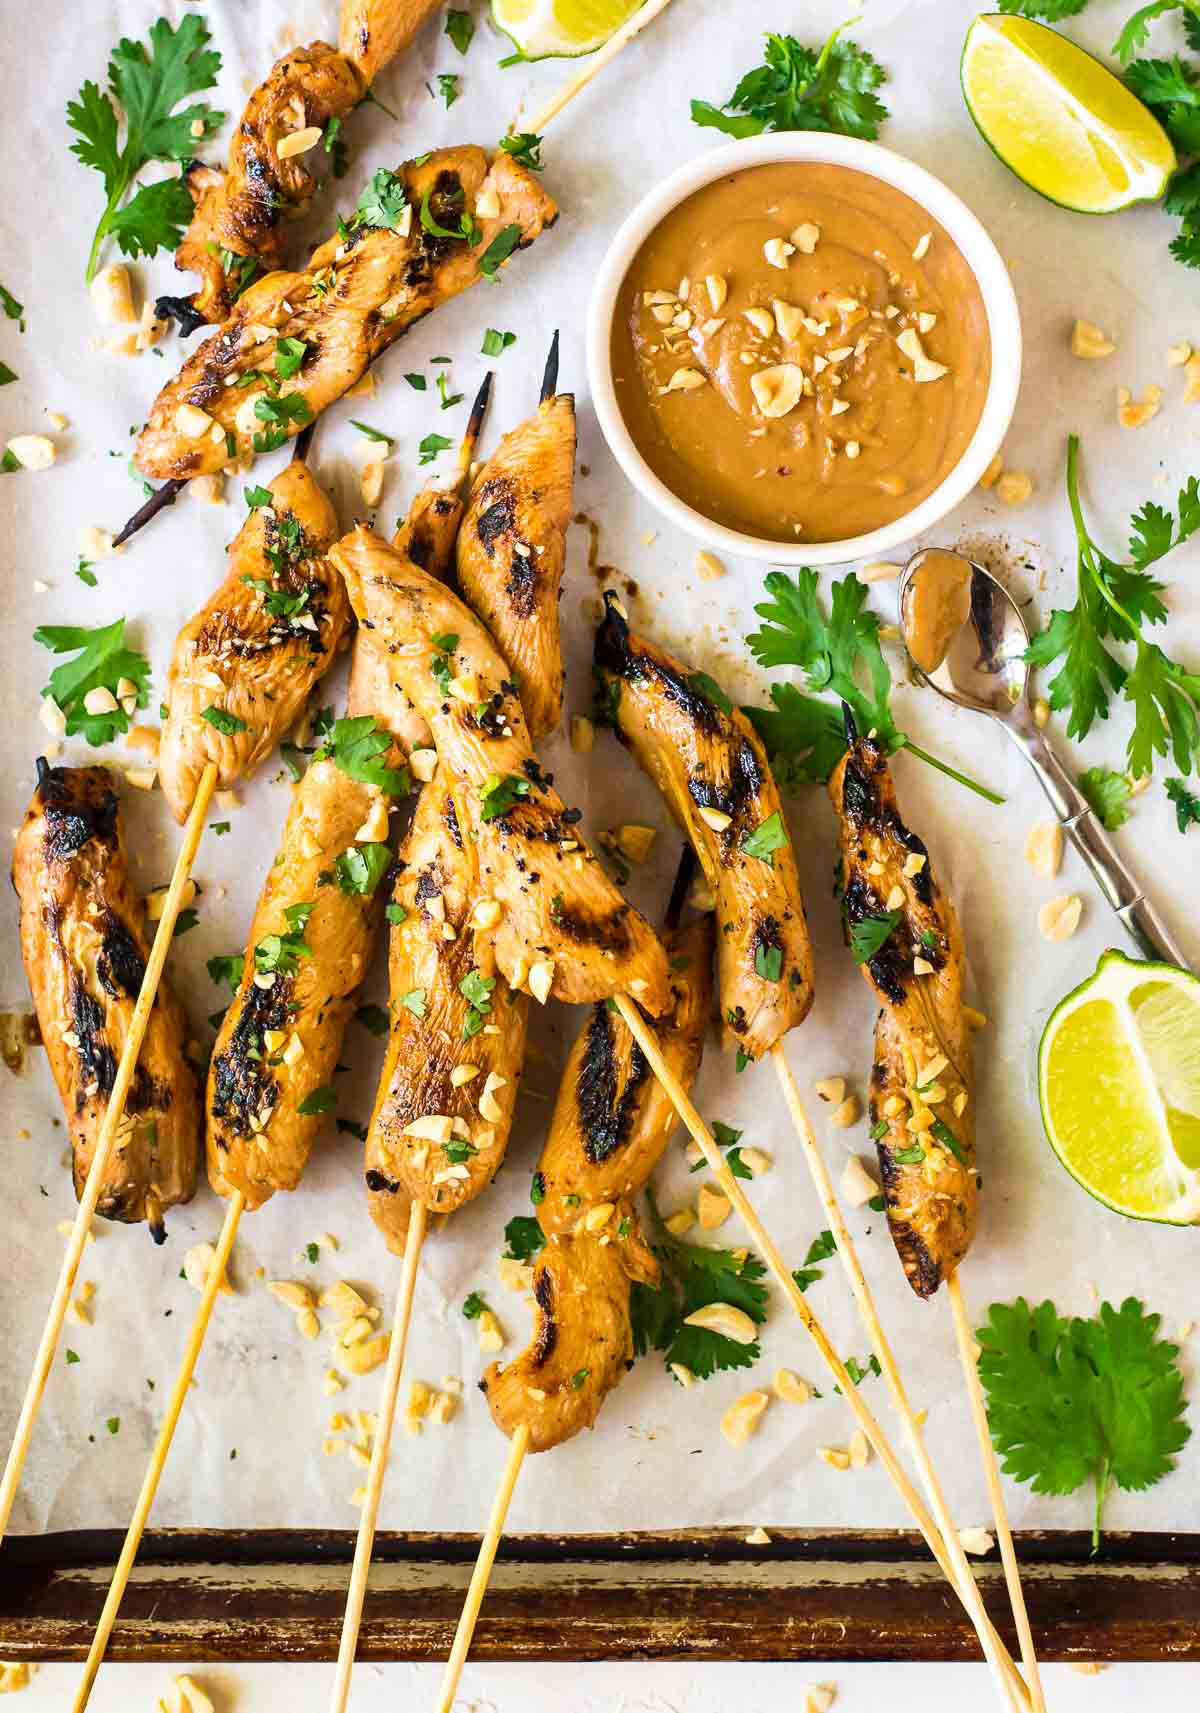 Grilled chicken skewers with dipping sauce